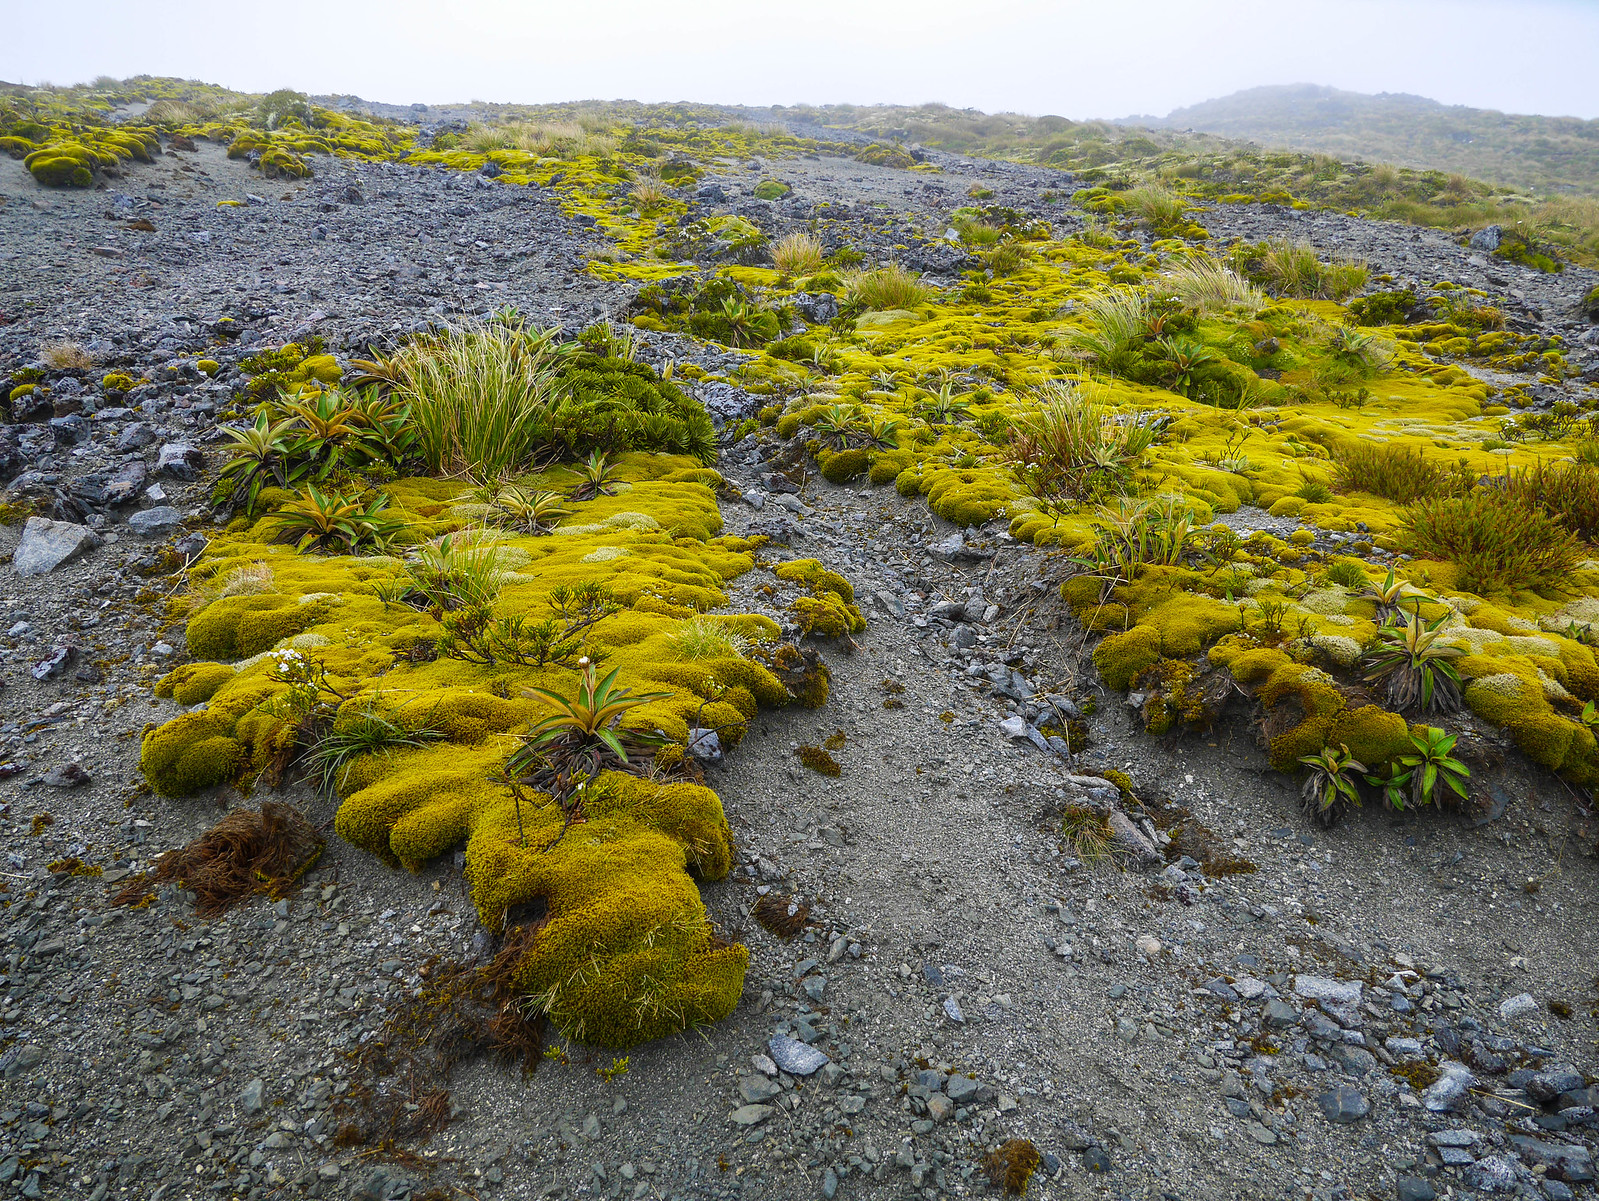 Kepler Track is full of surreal plants